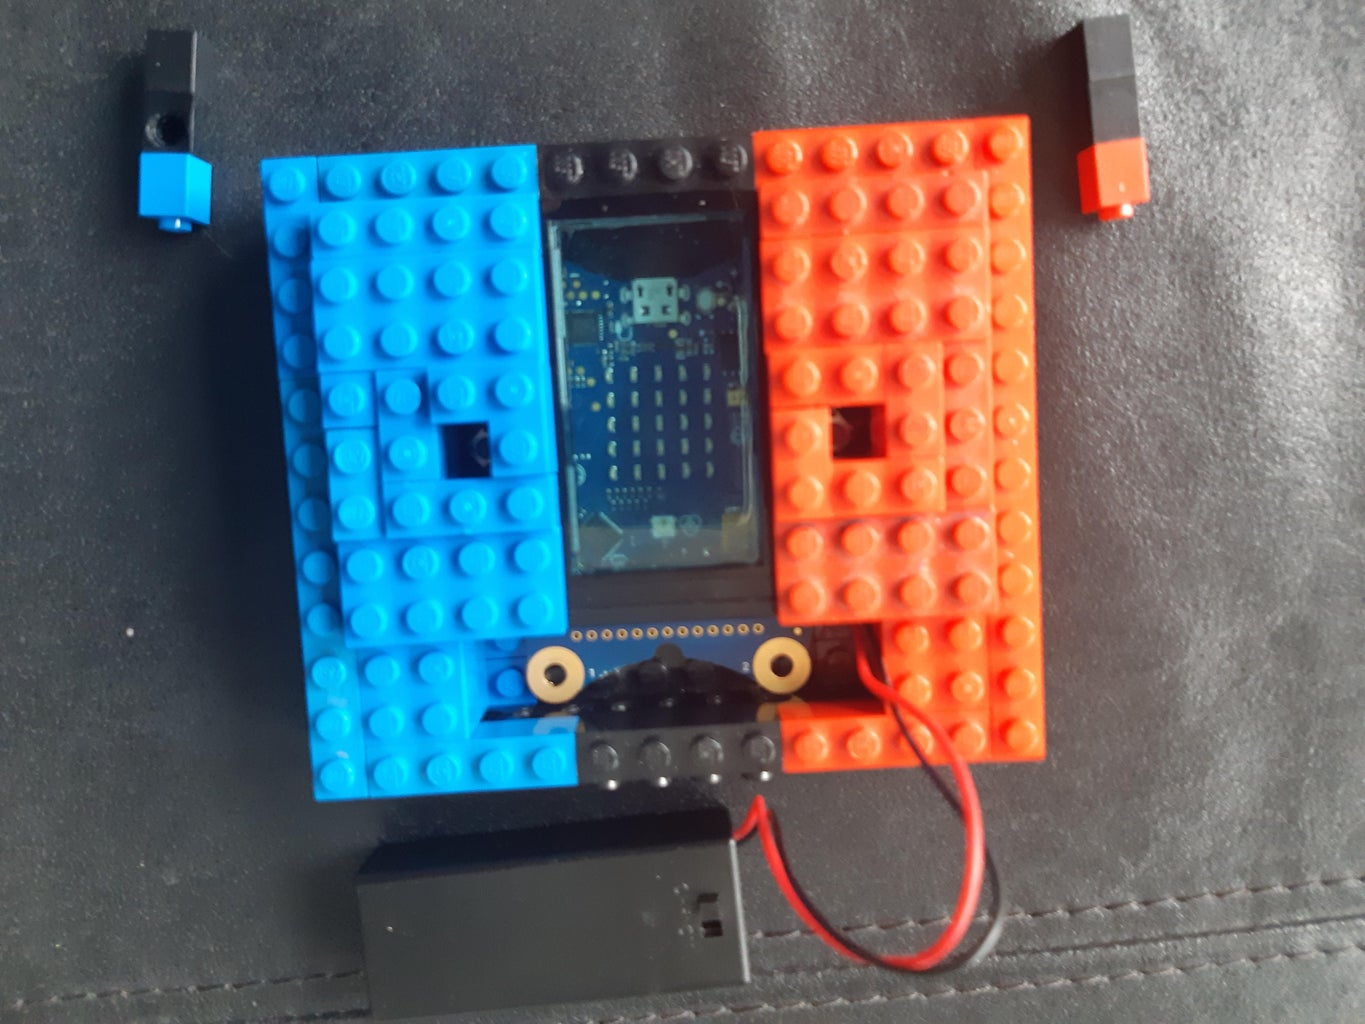 Put the Calliope Into the Lego Case and Add a Cover